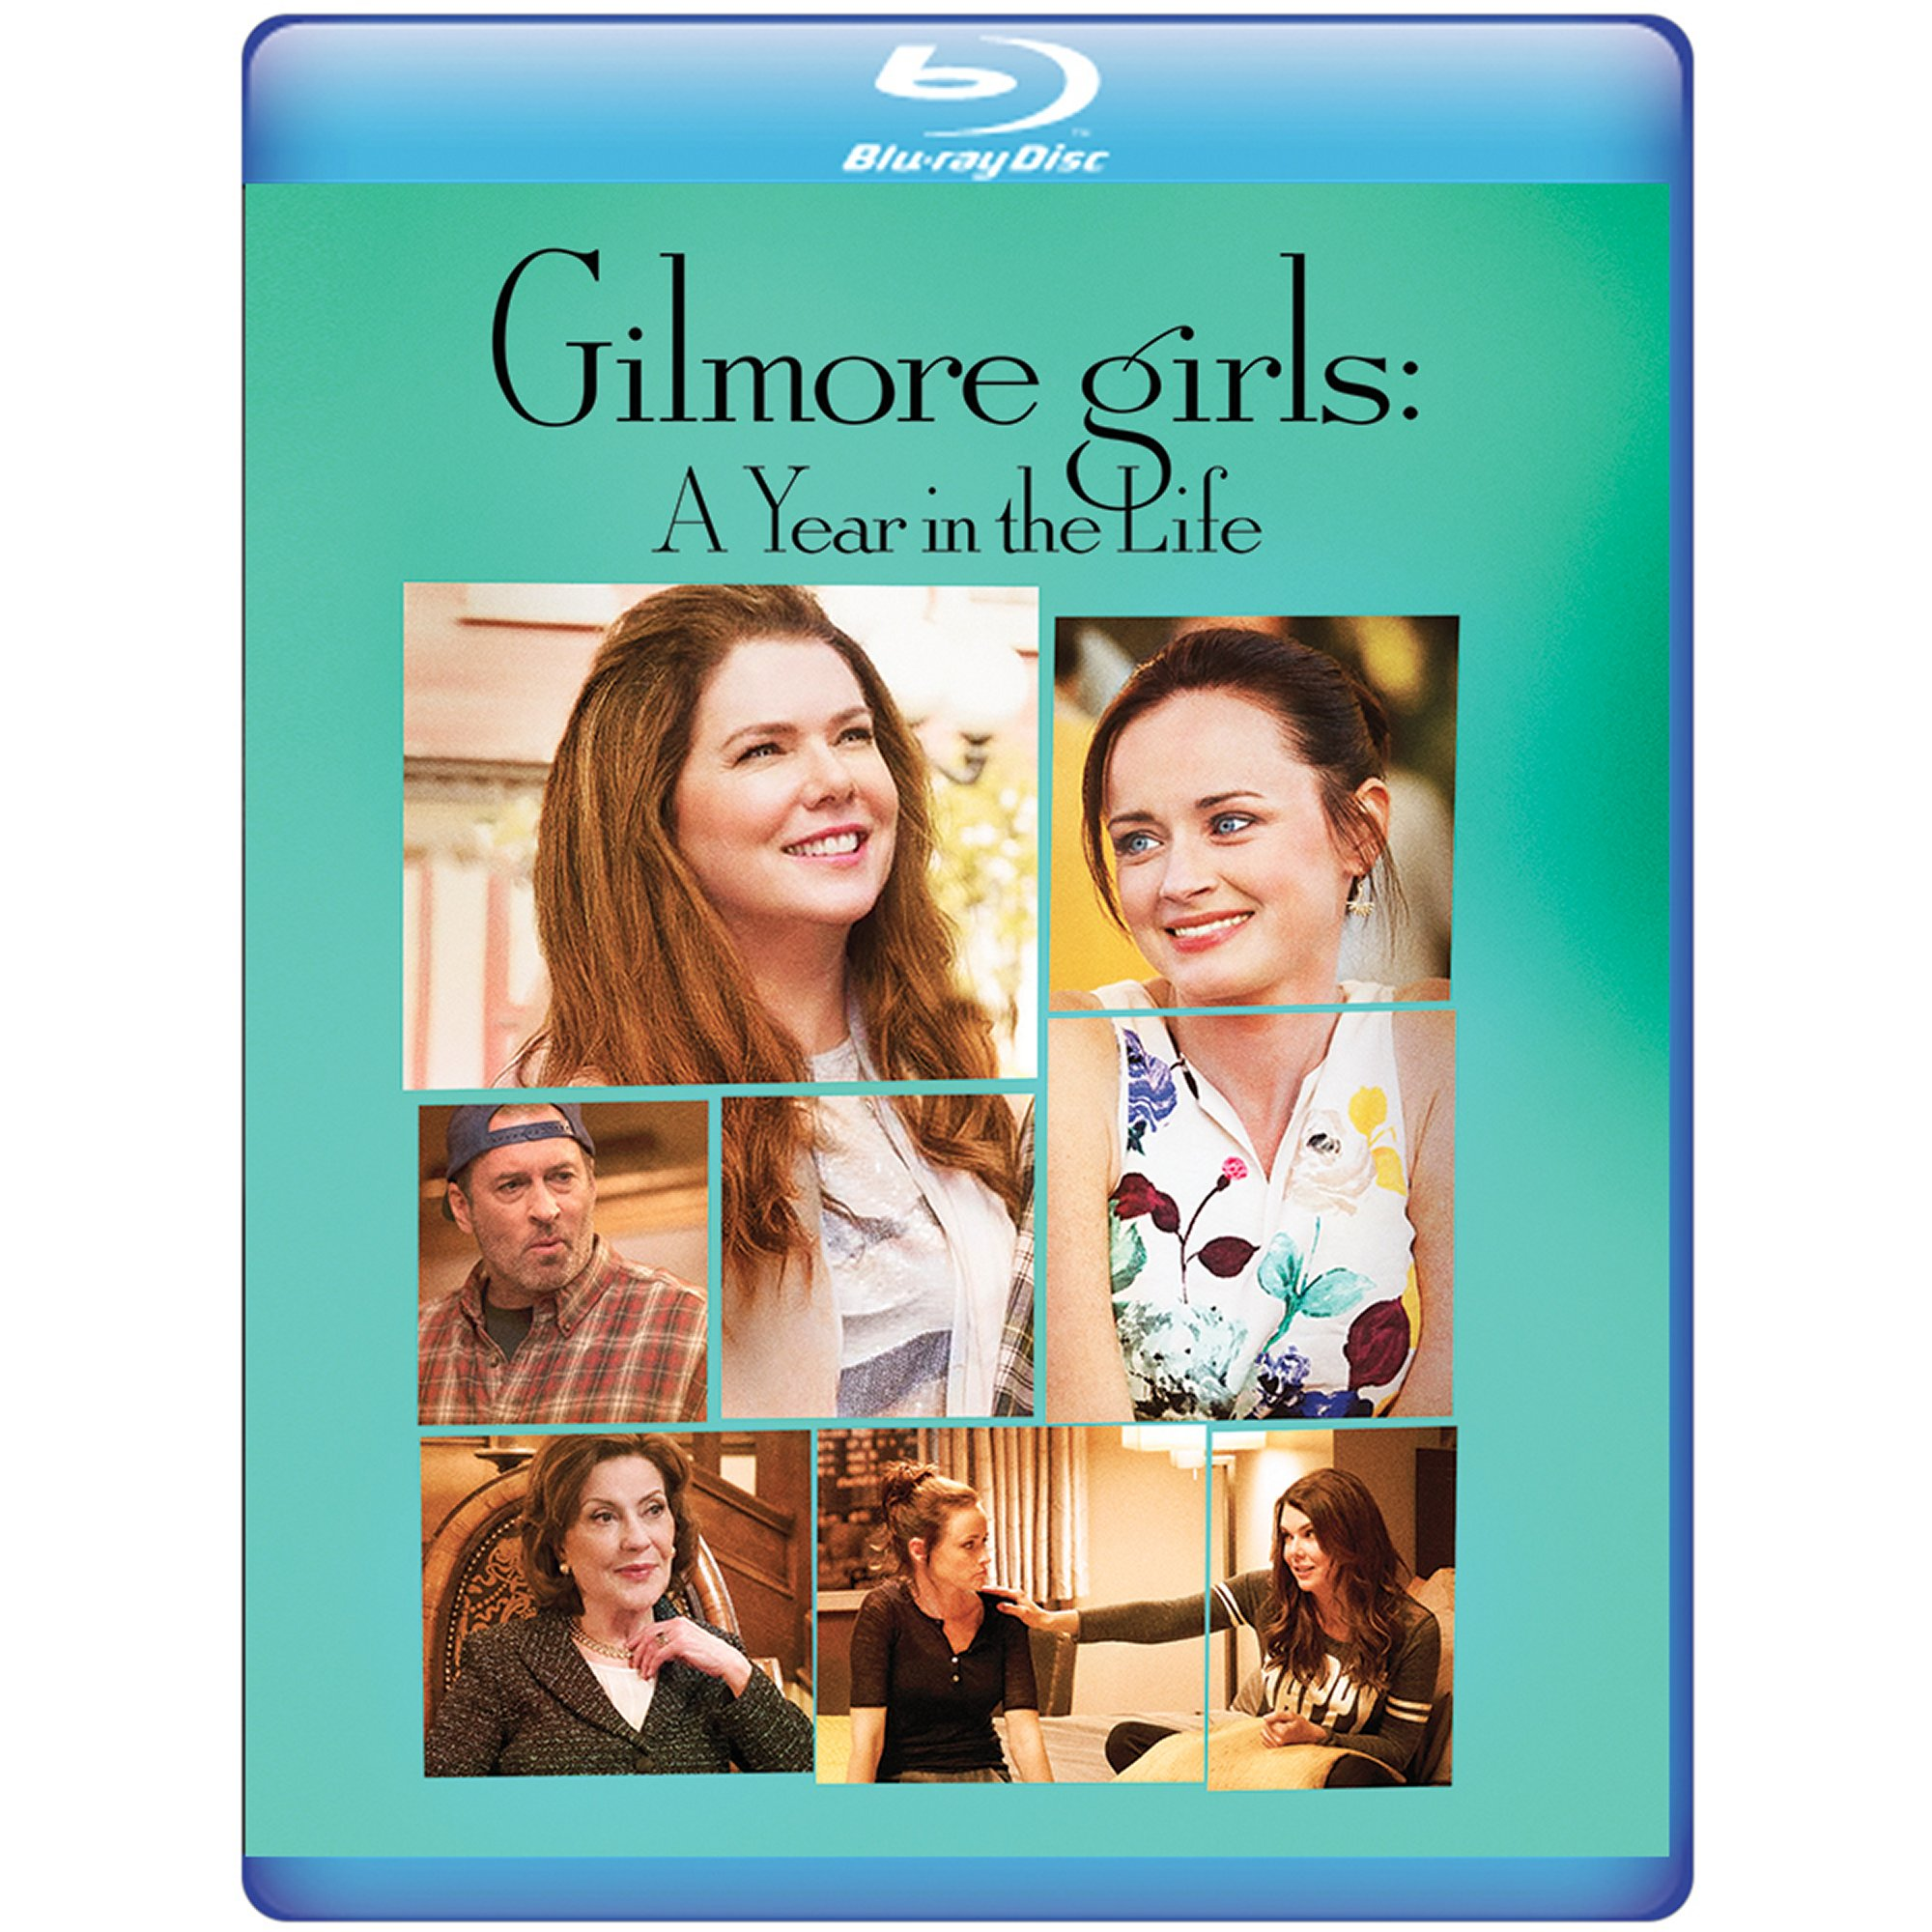 Gilmore Girls: A Year in the Life (Blu-ray)